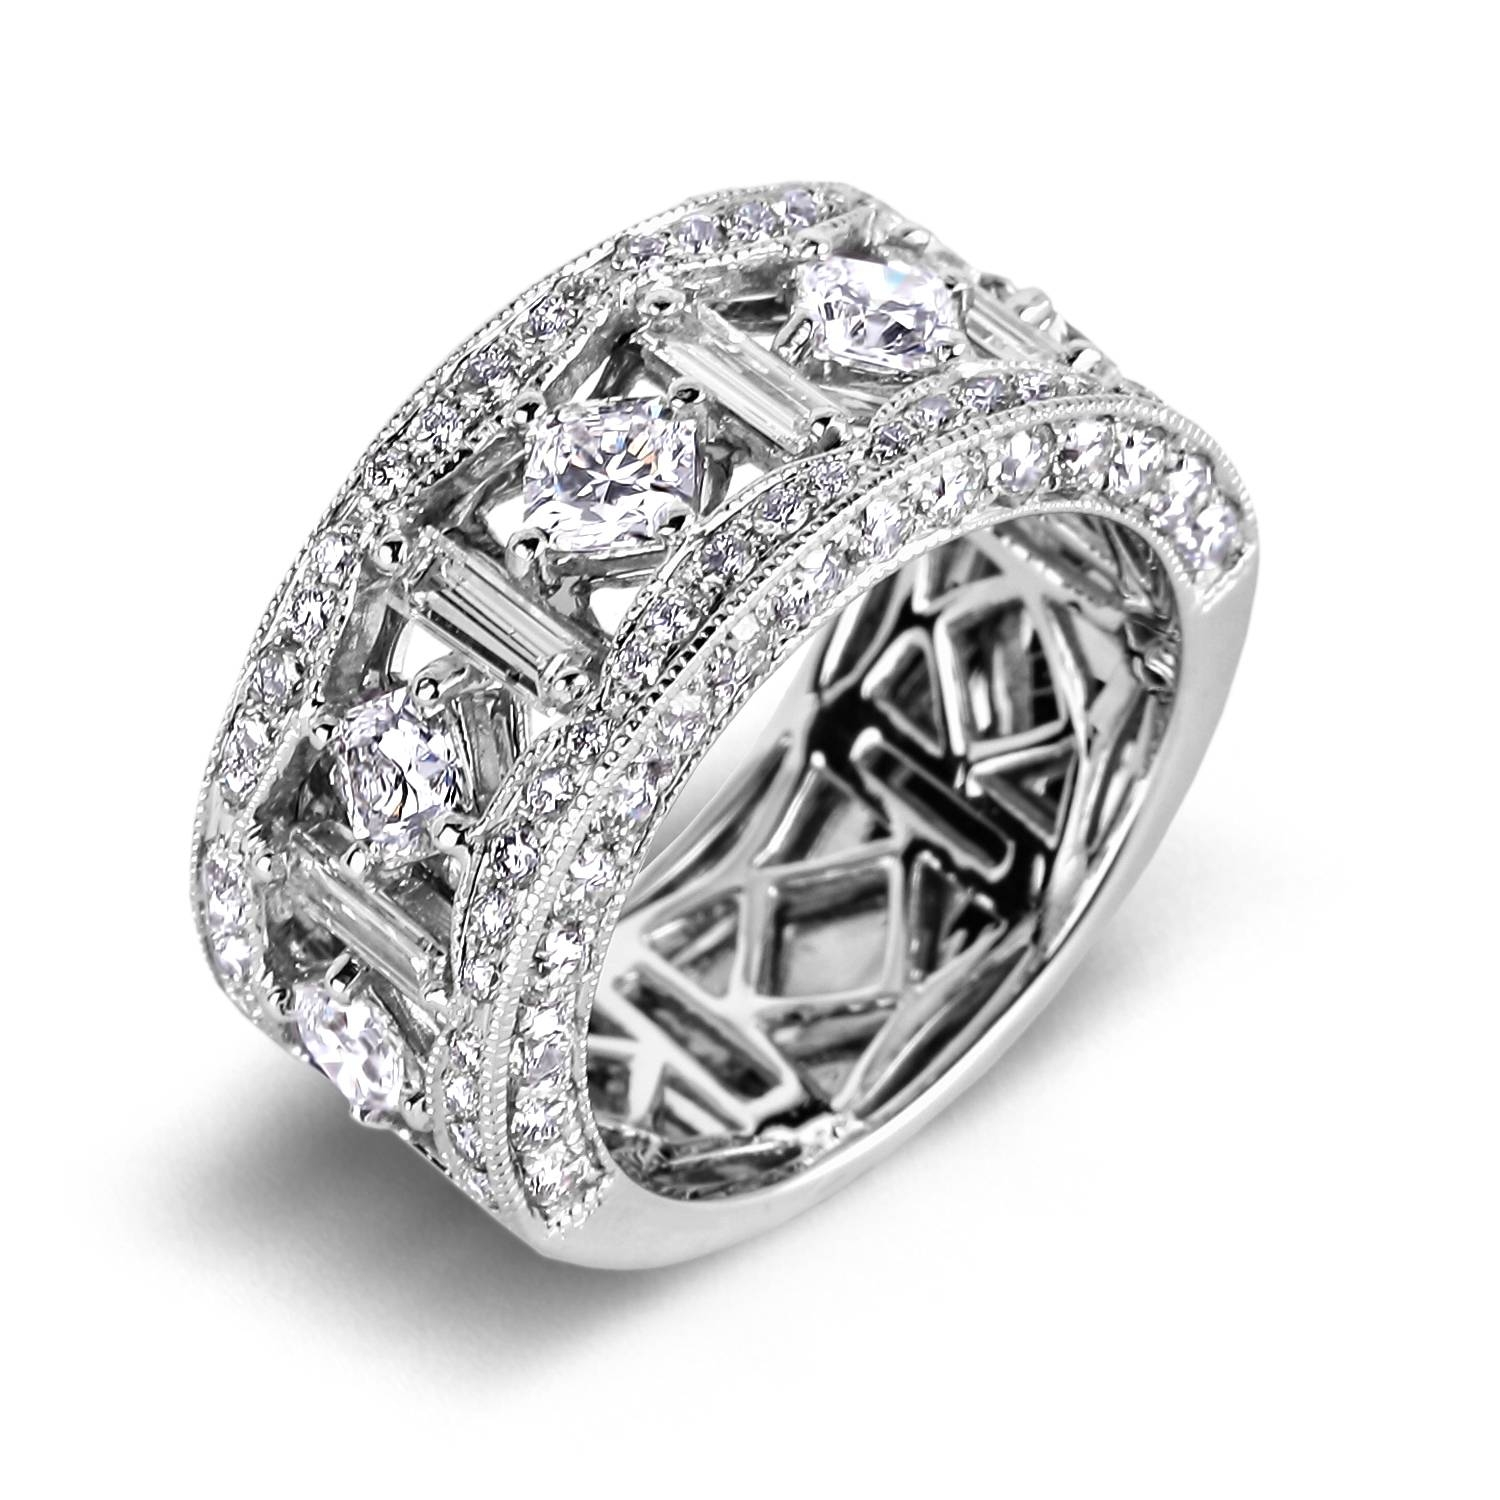 Wedding Anniversary Rings Diamonds | Wedding Ideas Intended For Recent 5 Year Anniversary Rings (Gallery 10 of 25)